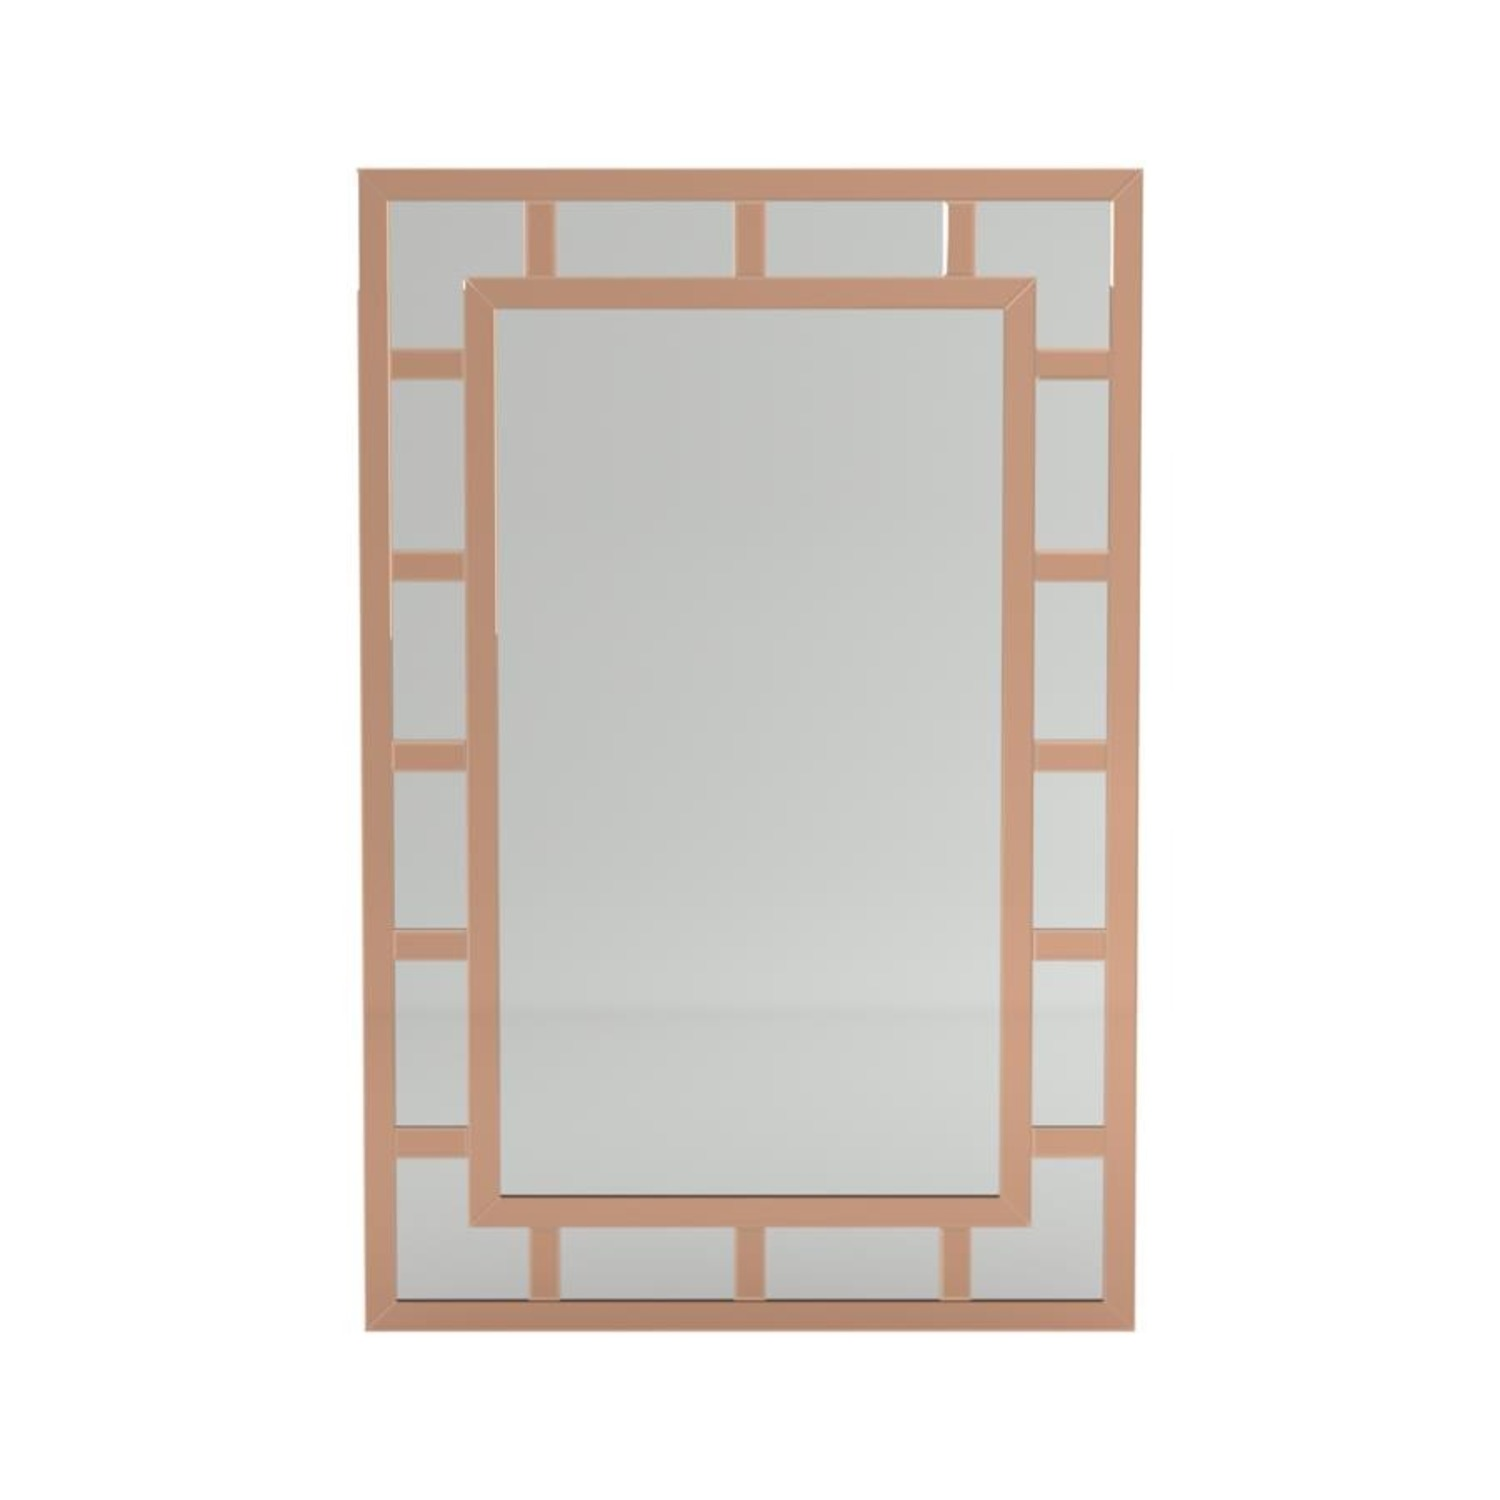 Mirror In Rose Gold Finish W/ Overlaying Design - image-1